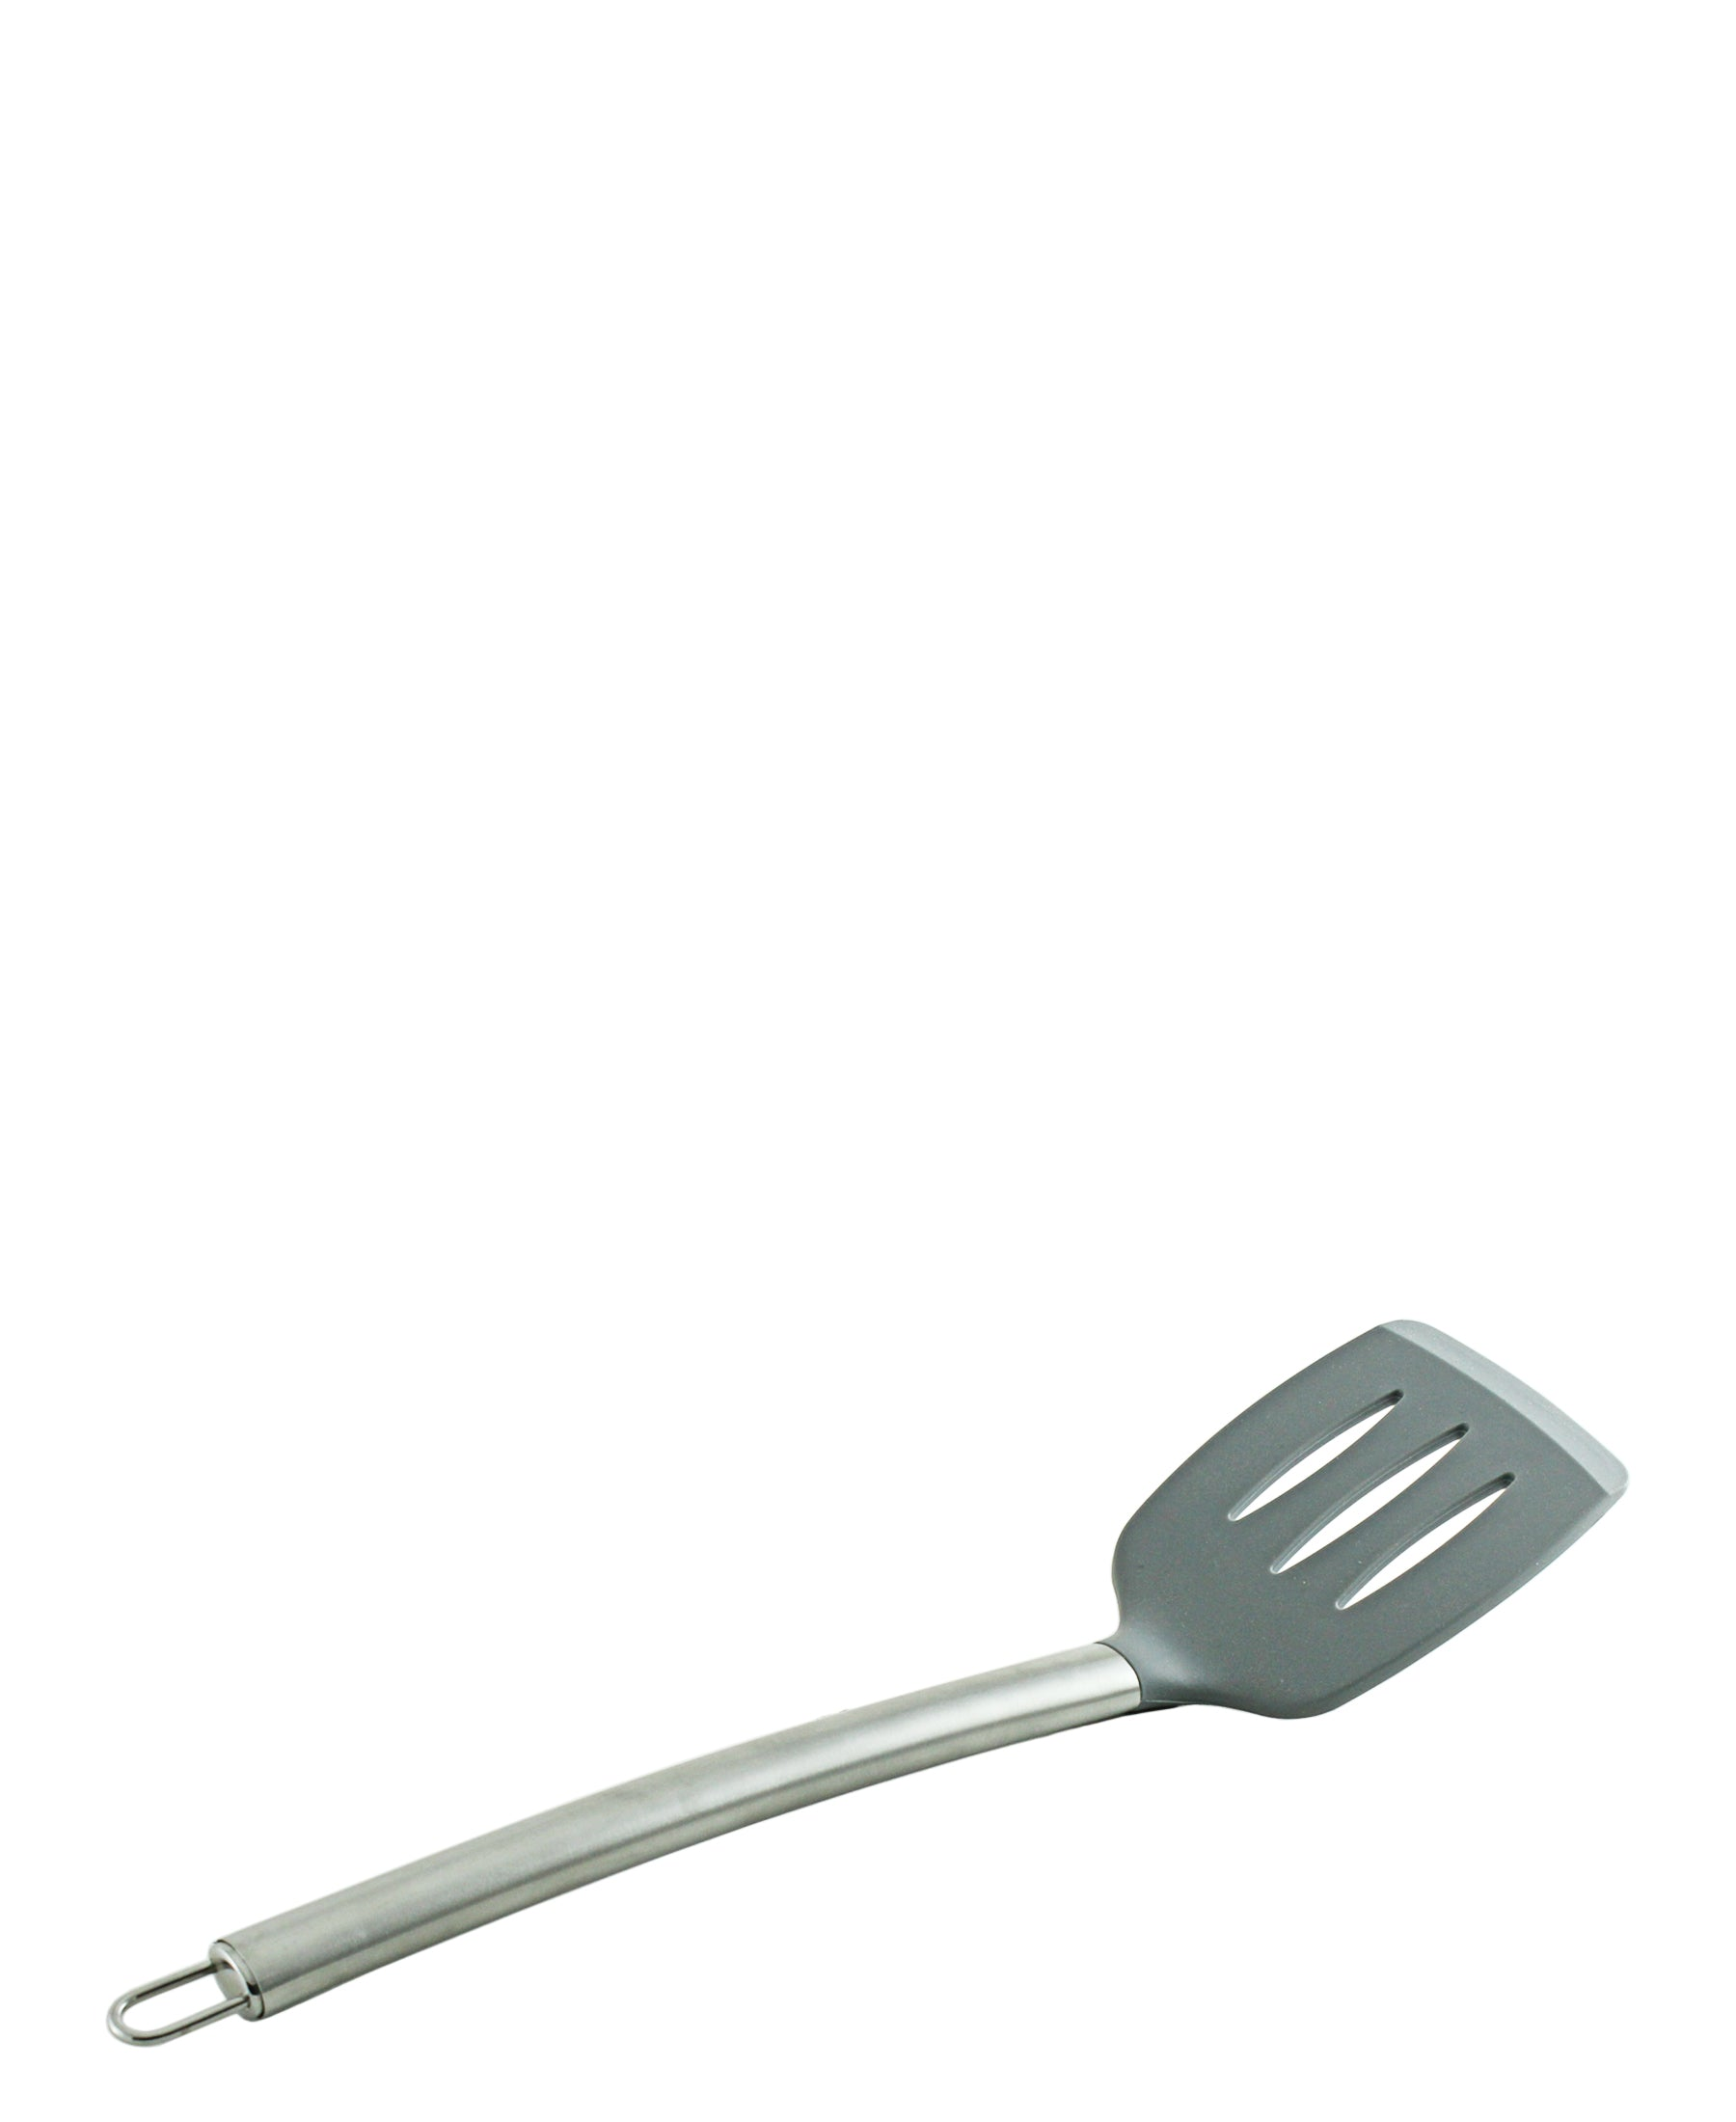 Table Pride Stainless Steel Egg Lifter - Grey